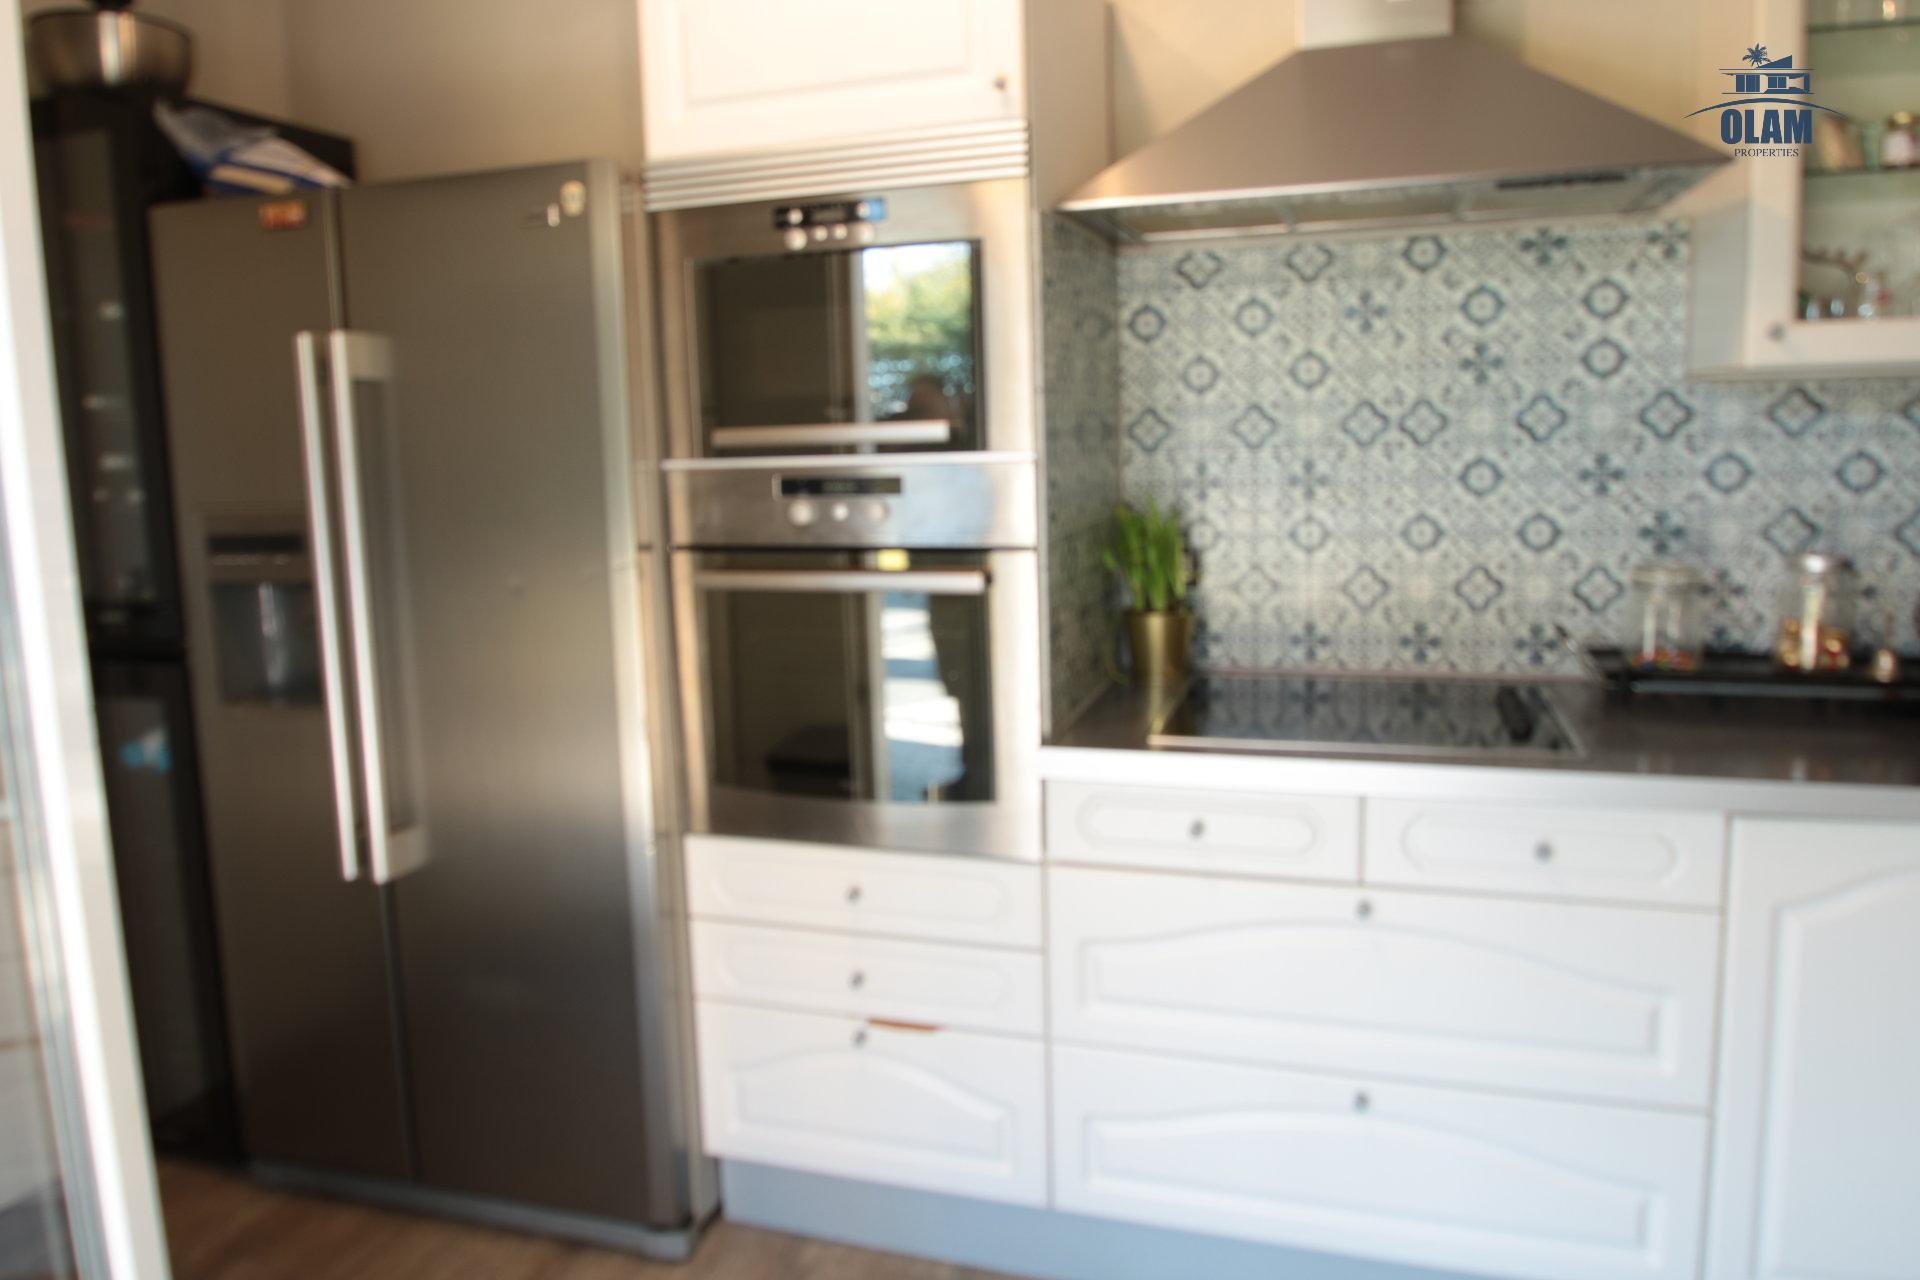 Kitchen, american fridge, oven, Cannes, La Croisette, French Riviera